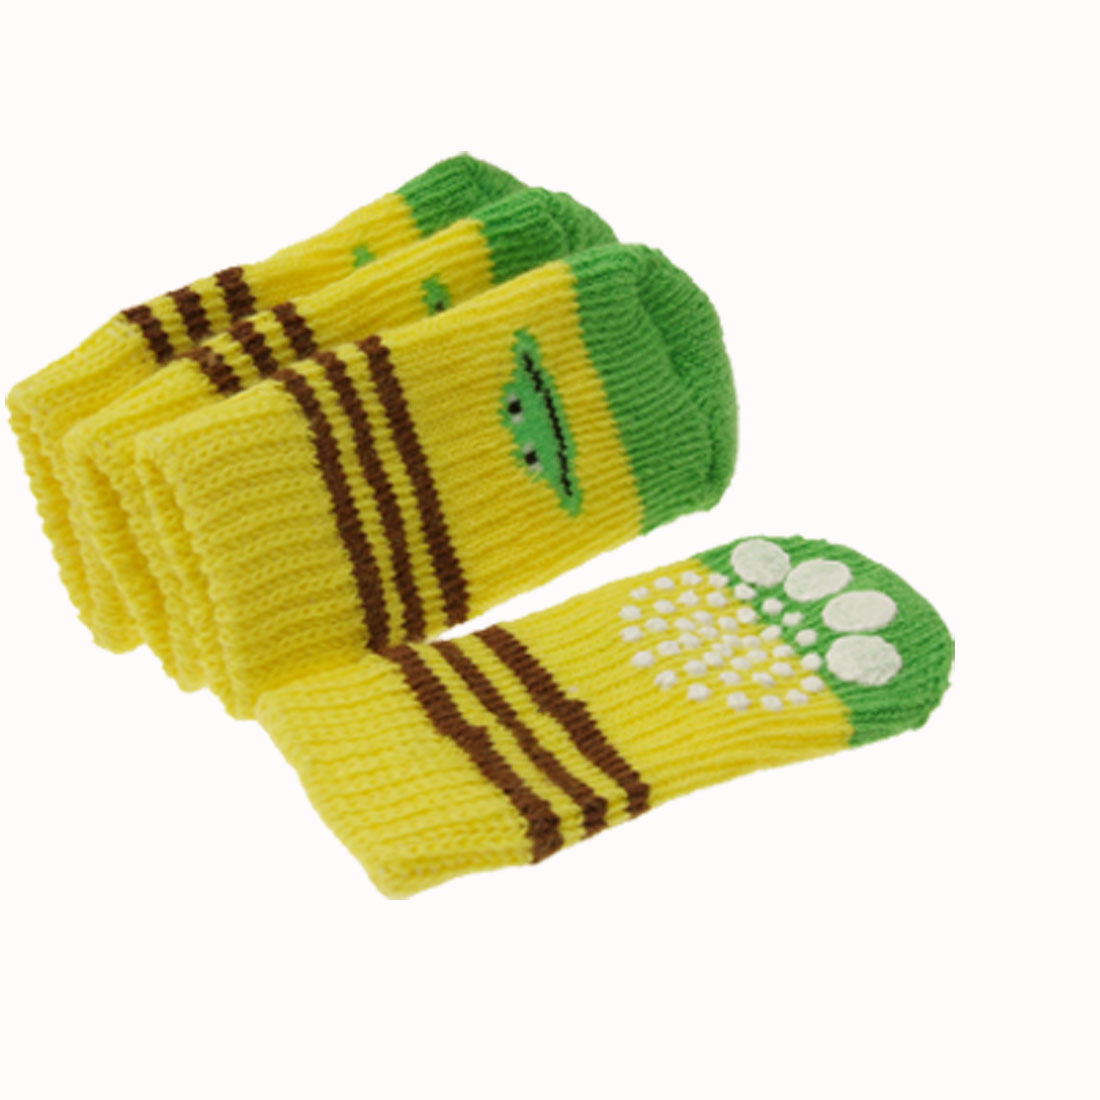 Nonskid Socks with Banana Pattern for Pet Dog Puppy Doggle Doggie 7.0 x 3.0cm